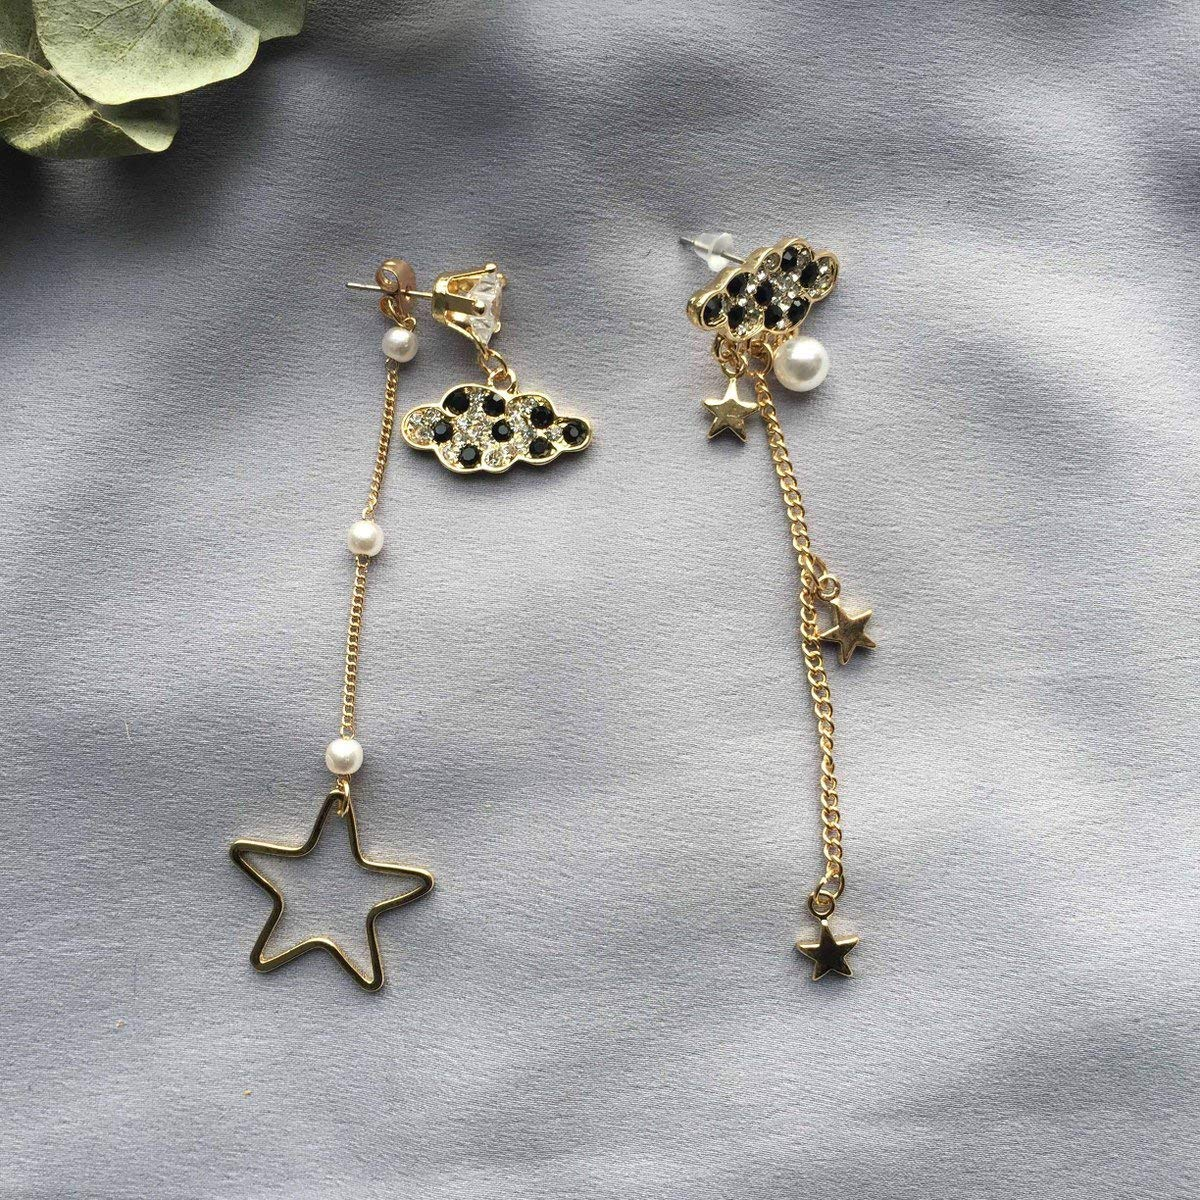 b66fb484999e Get Quotations · Dinner earrings long section luxury irregular five-pointed  star temperament Korean ladies lady earrings 2018